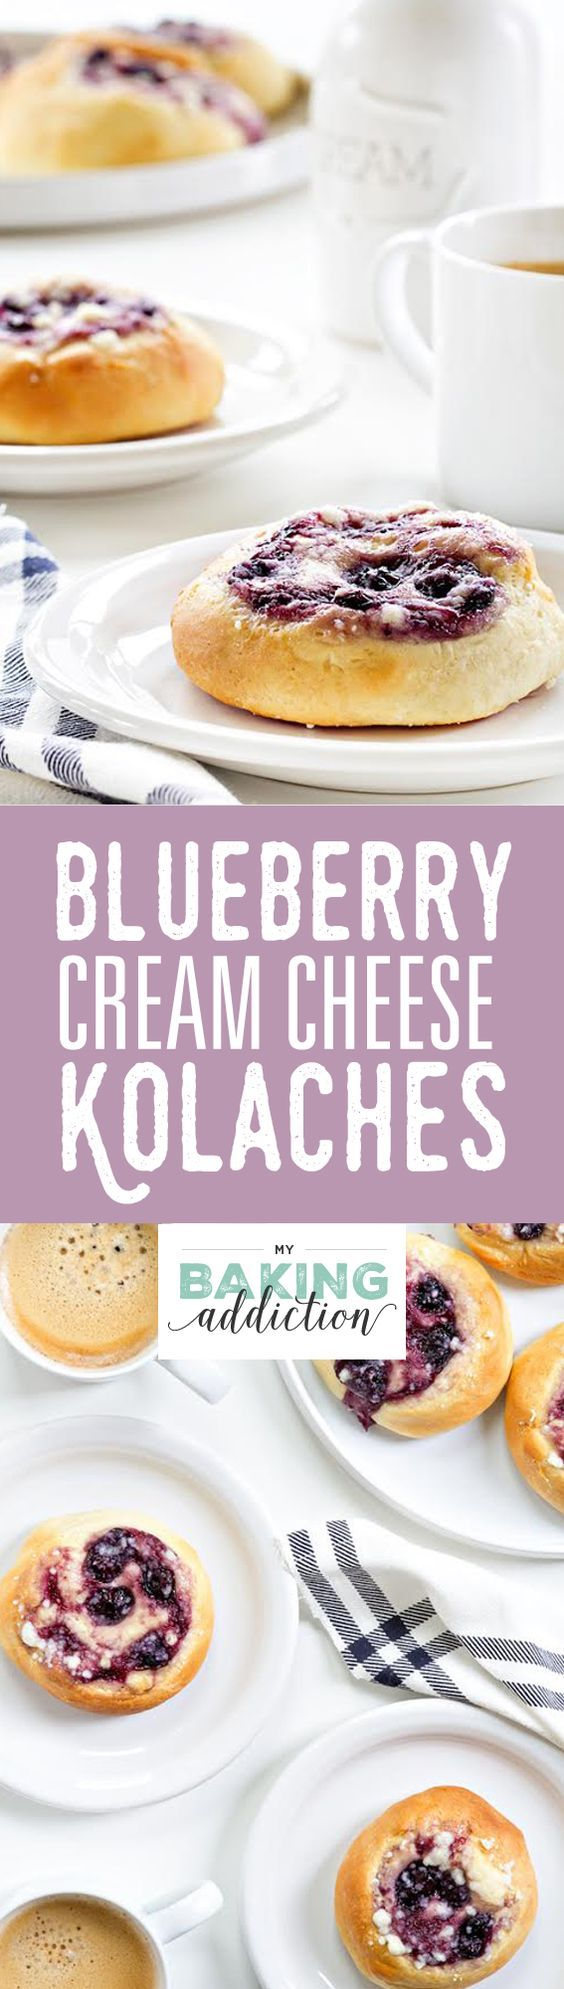 Blueberry Cream Cheese Kolaches are an amazing pastry you must try. Sweet, savory, and totally delightful!